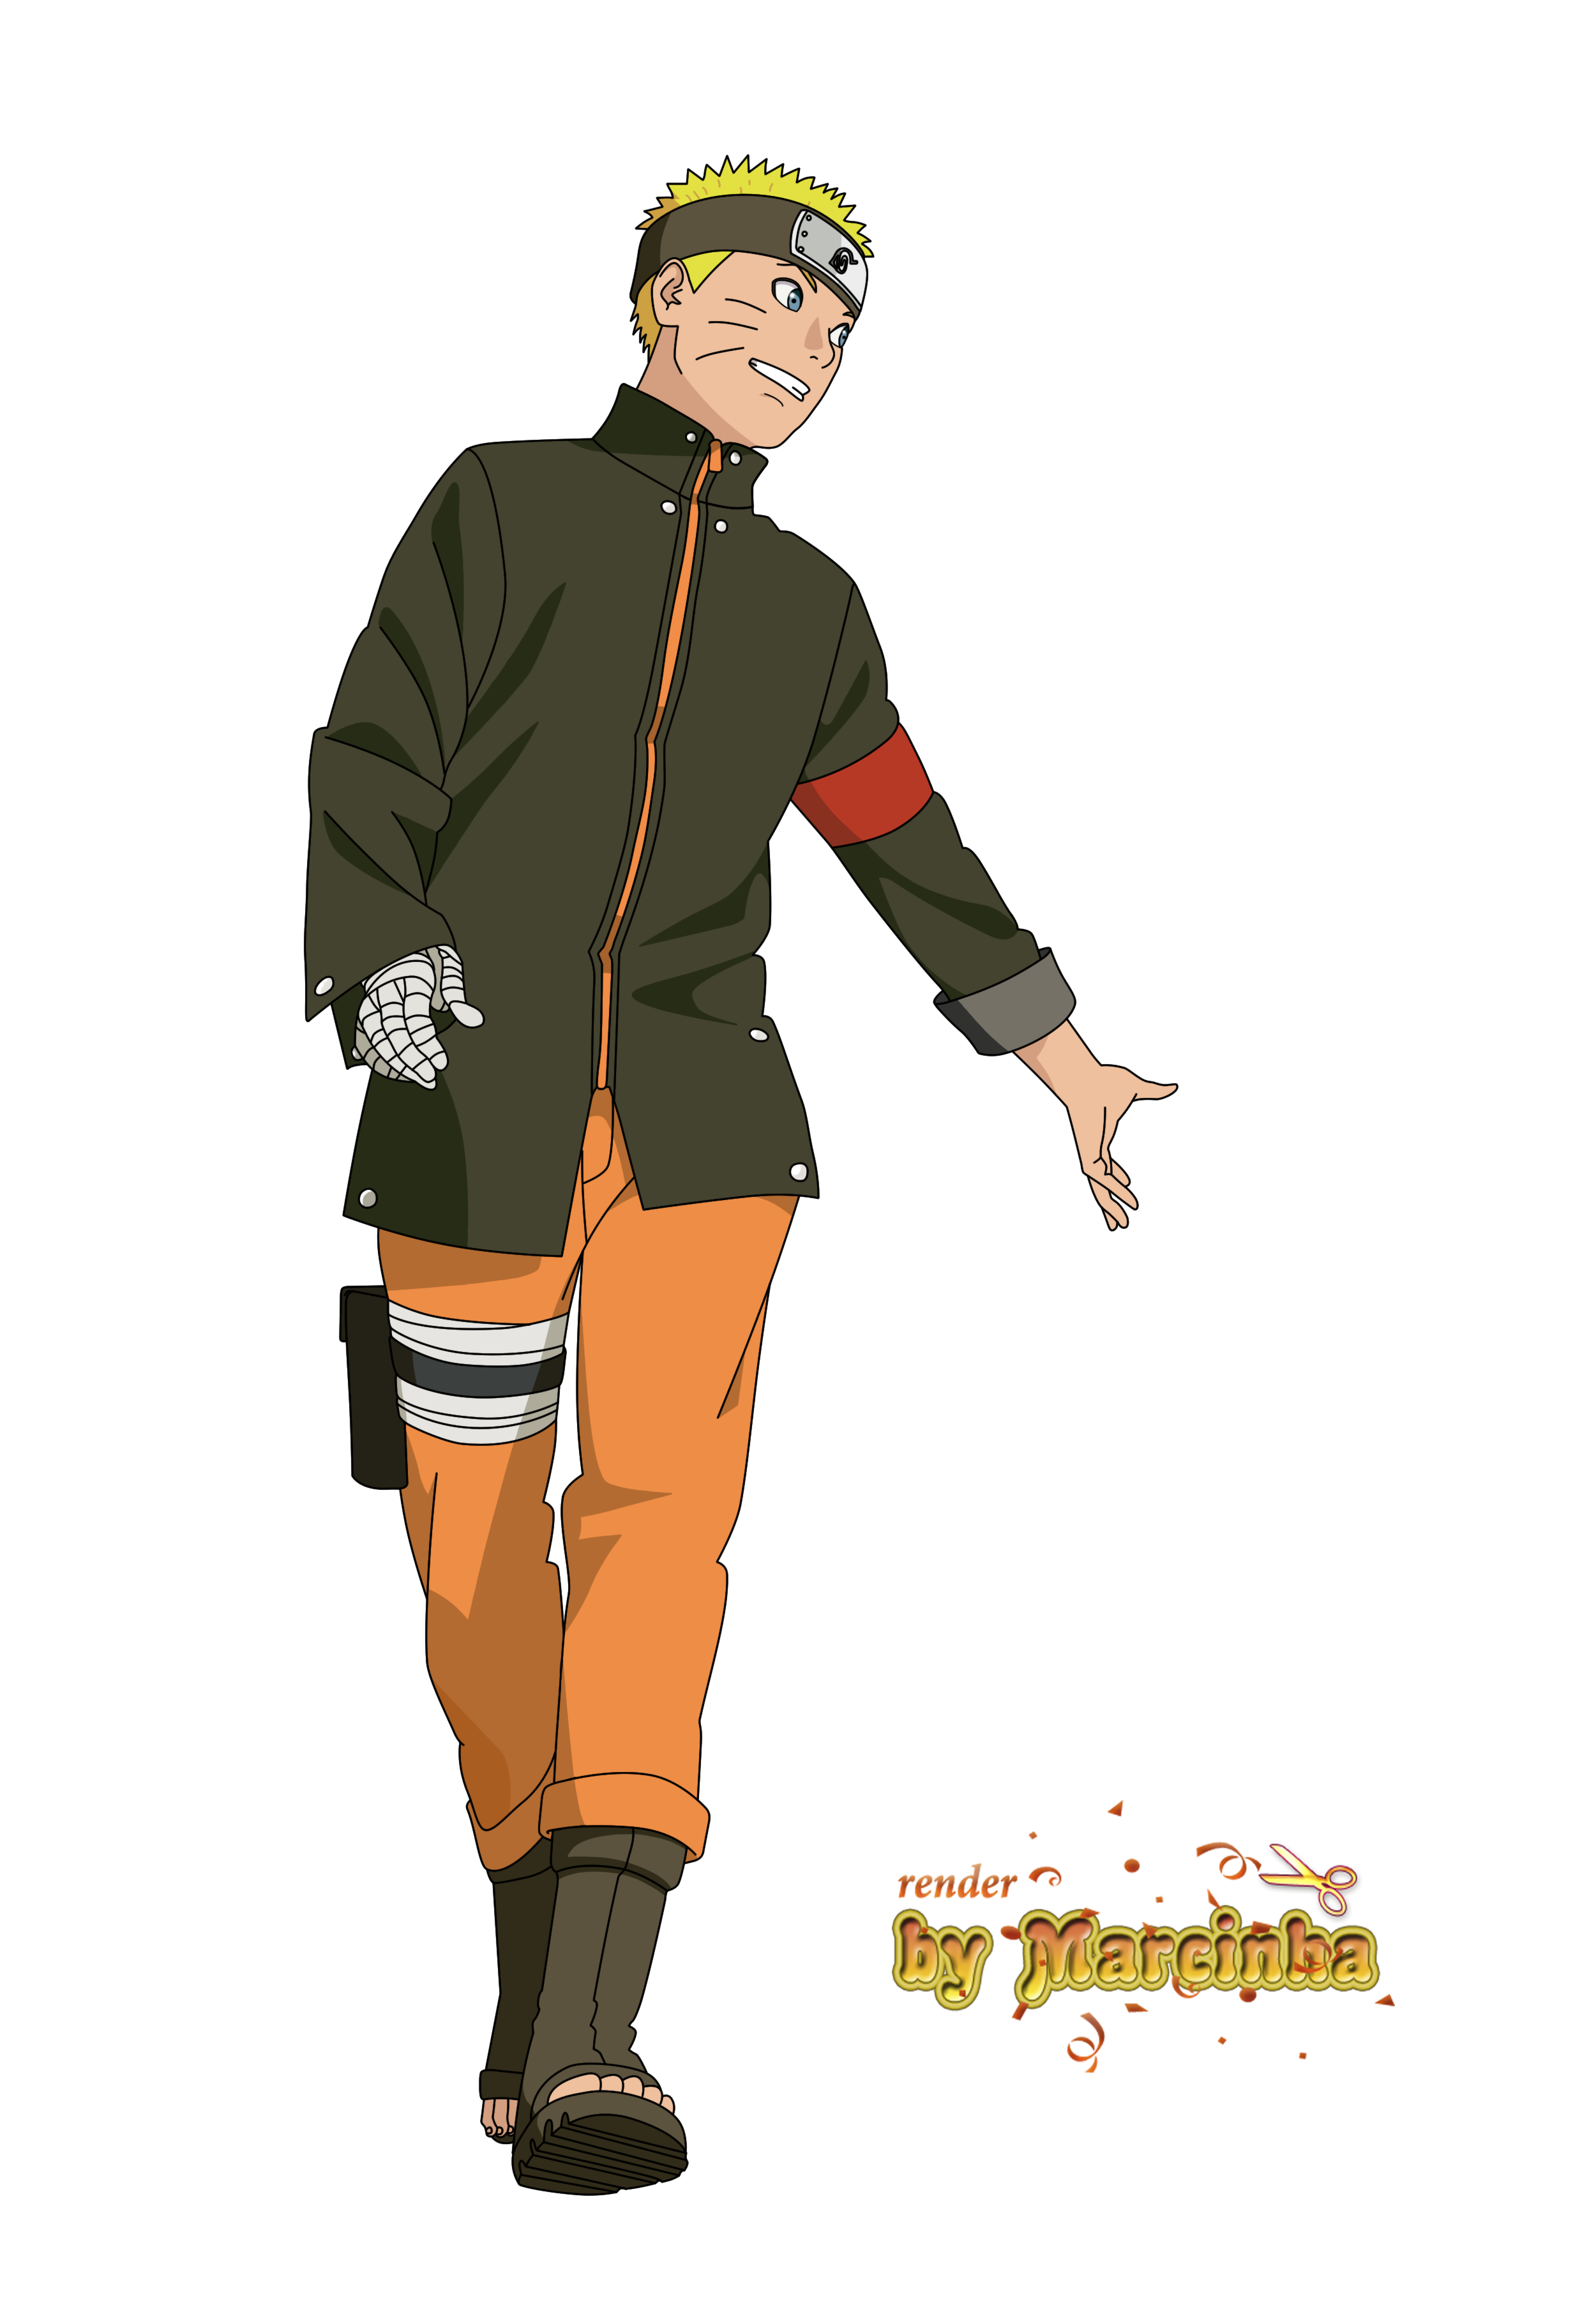 Character Design Naruto The Last : Naruto the last by marcinha on deviantart